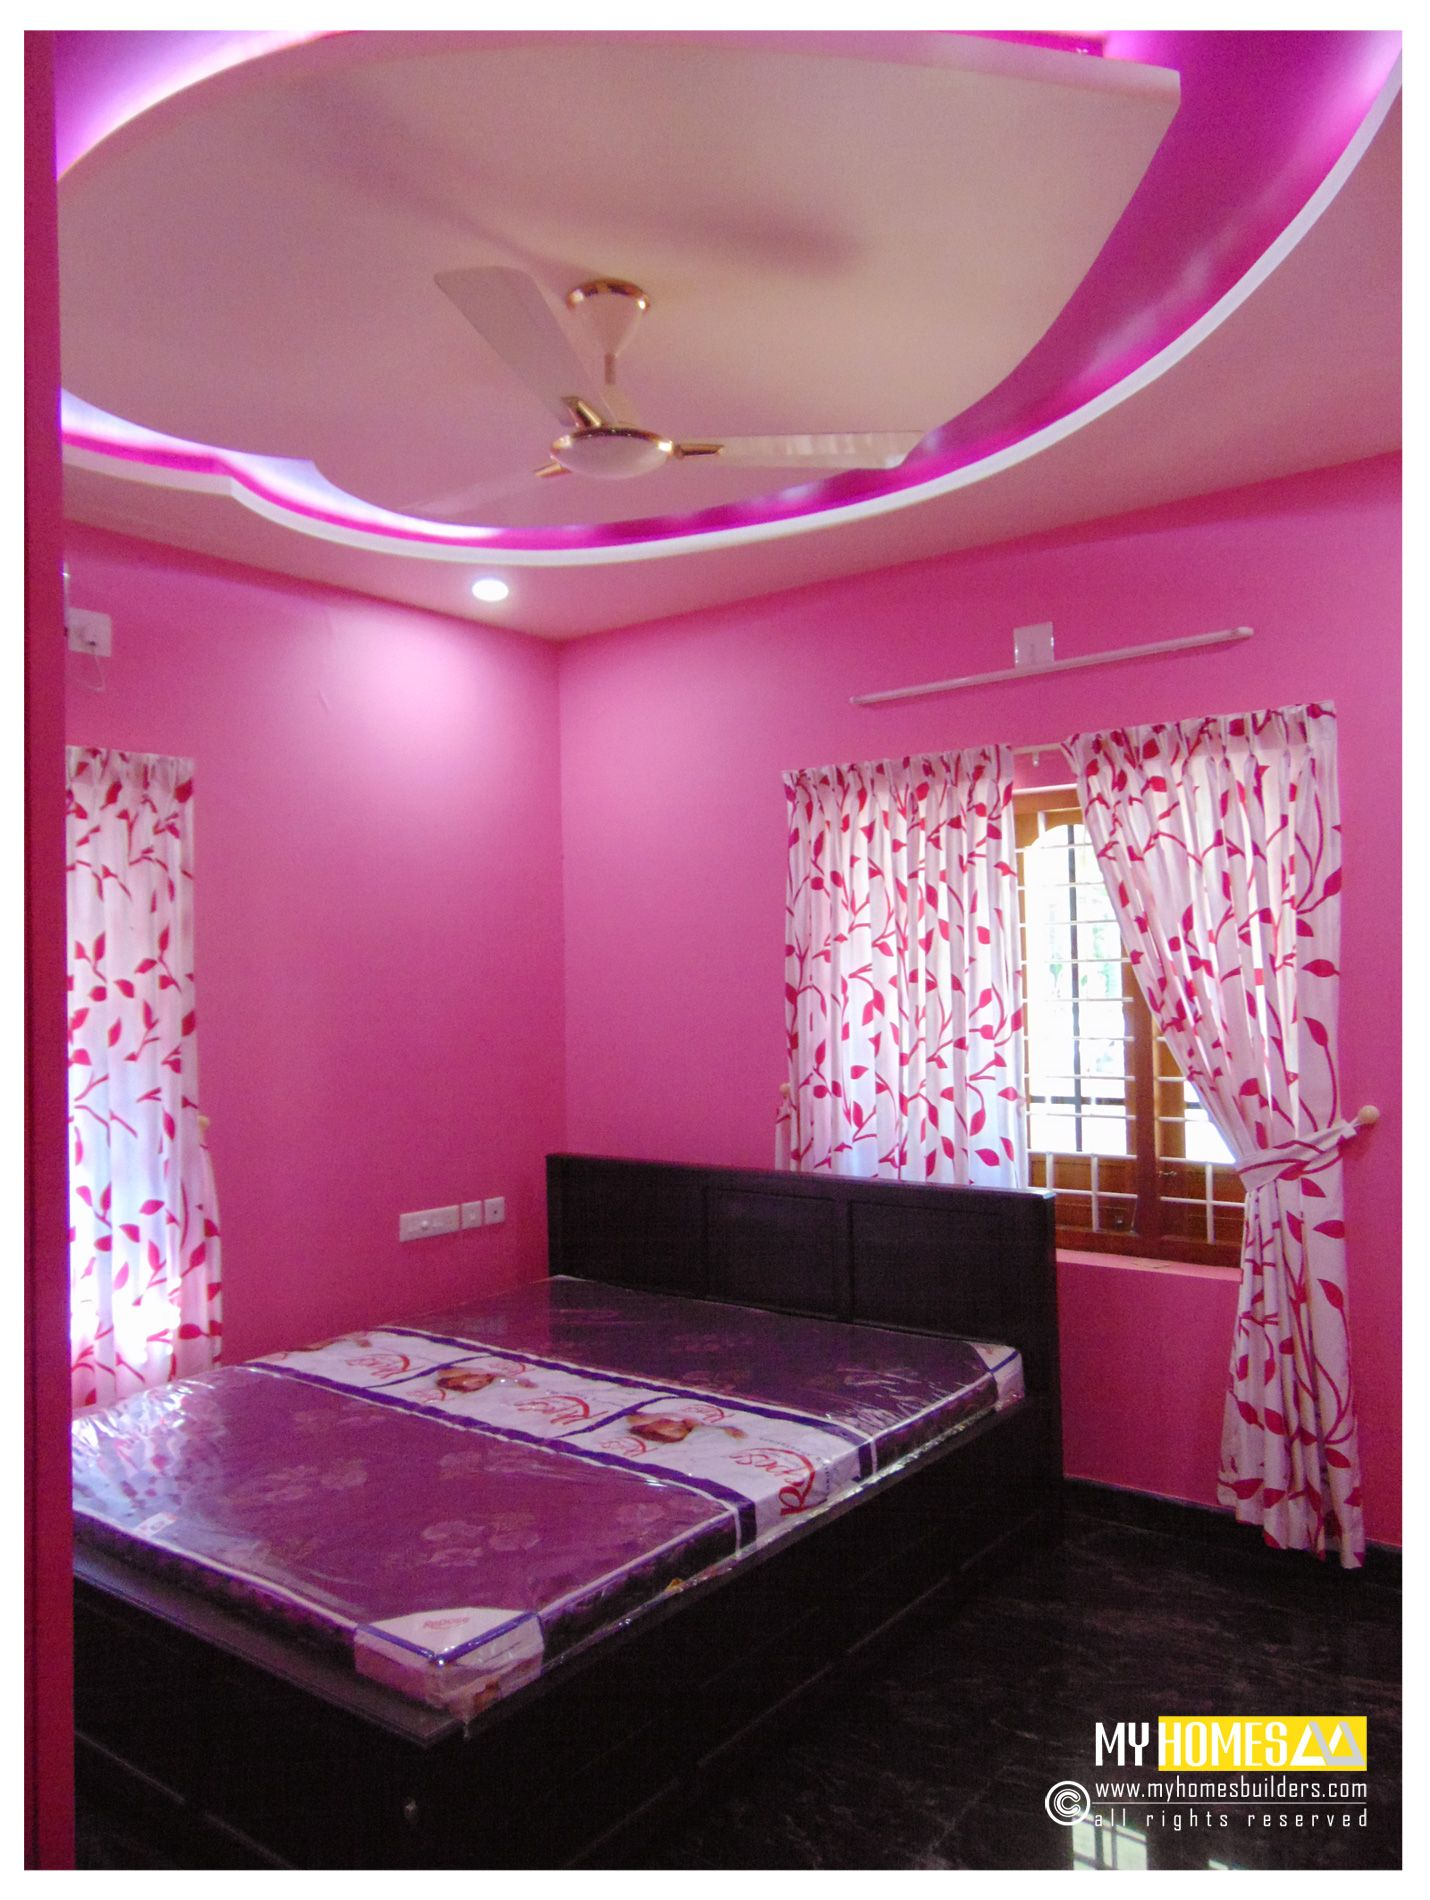 Kerala bedroom interior designs best bed room interior for Simple indian bedroom interior design ideas